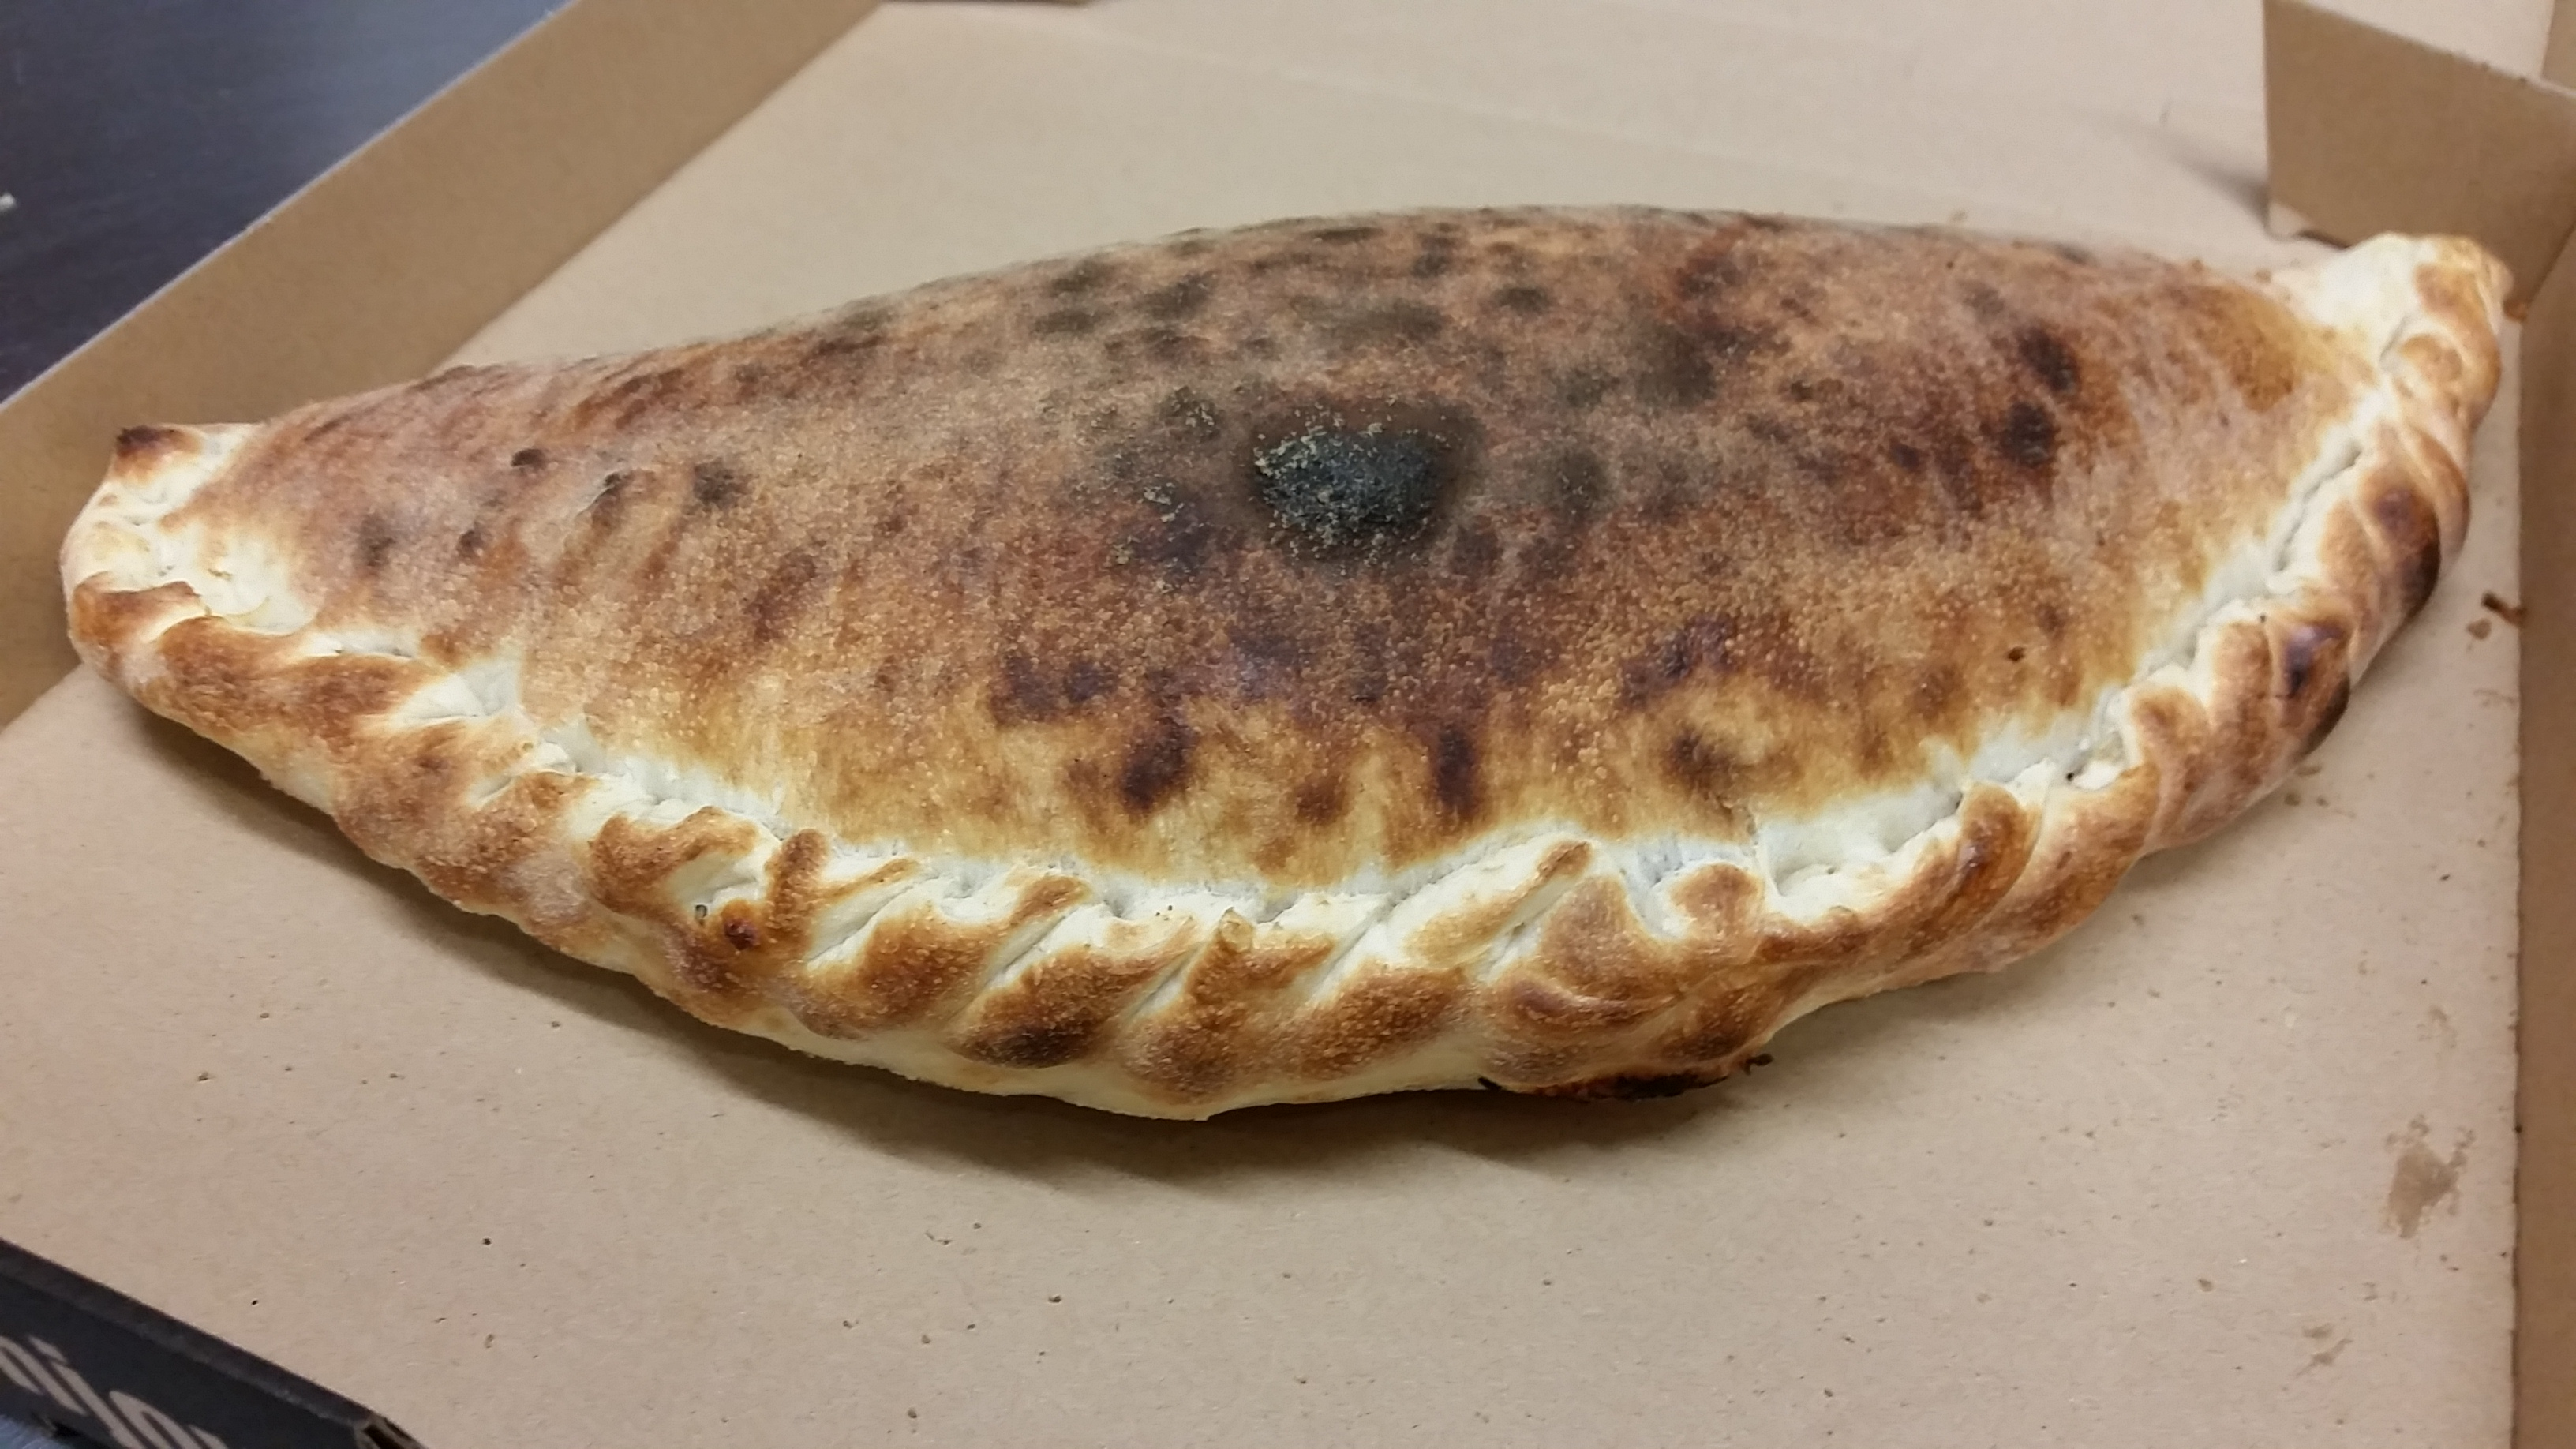 Calzone (Folded Pizza)